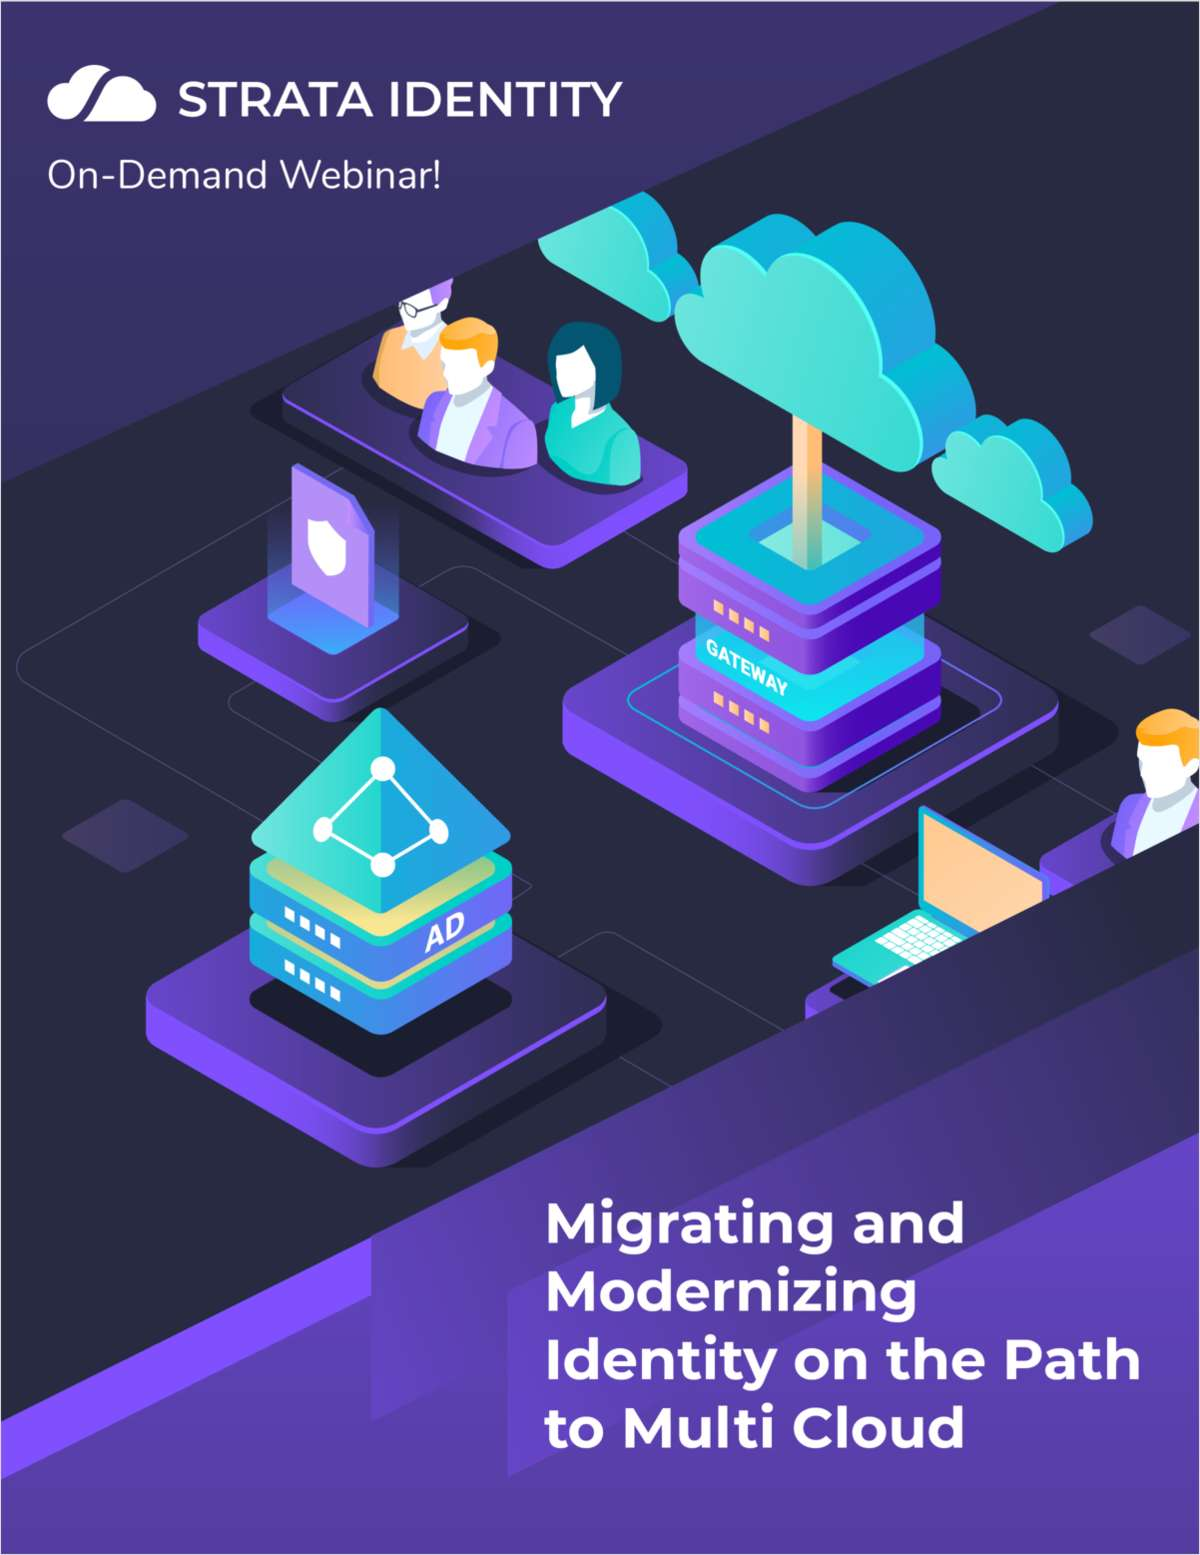 Migrating and Modernizing Identity on the Path to Multi-Cloud